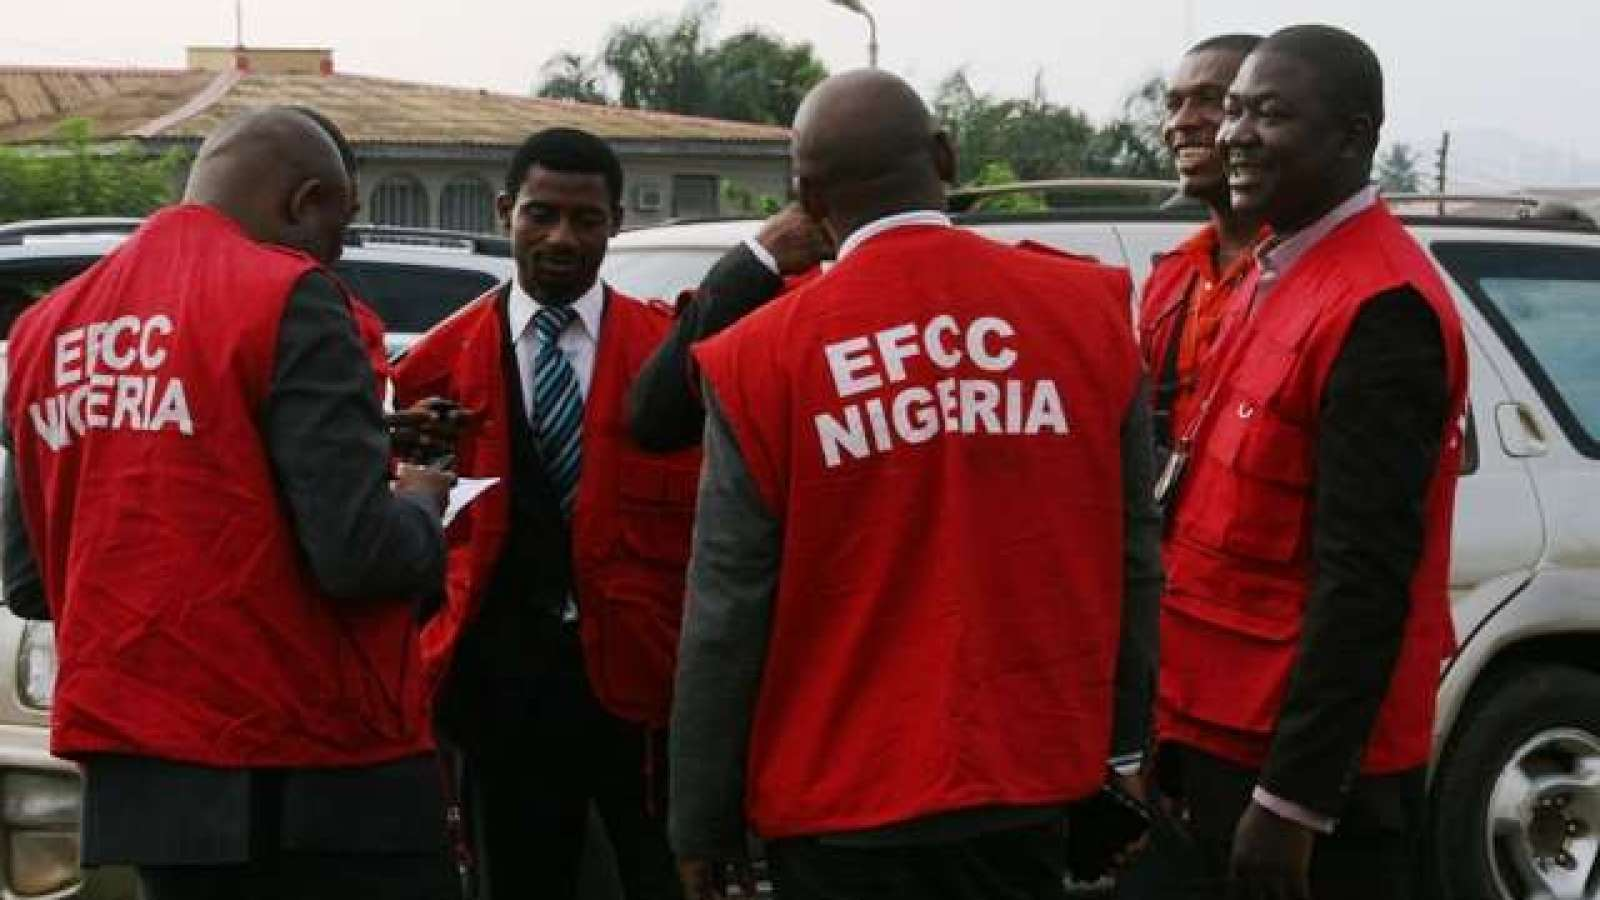 EFCC arrests six suspected internet fraudsters